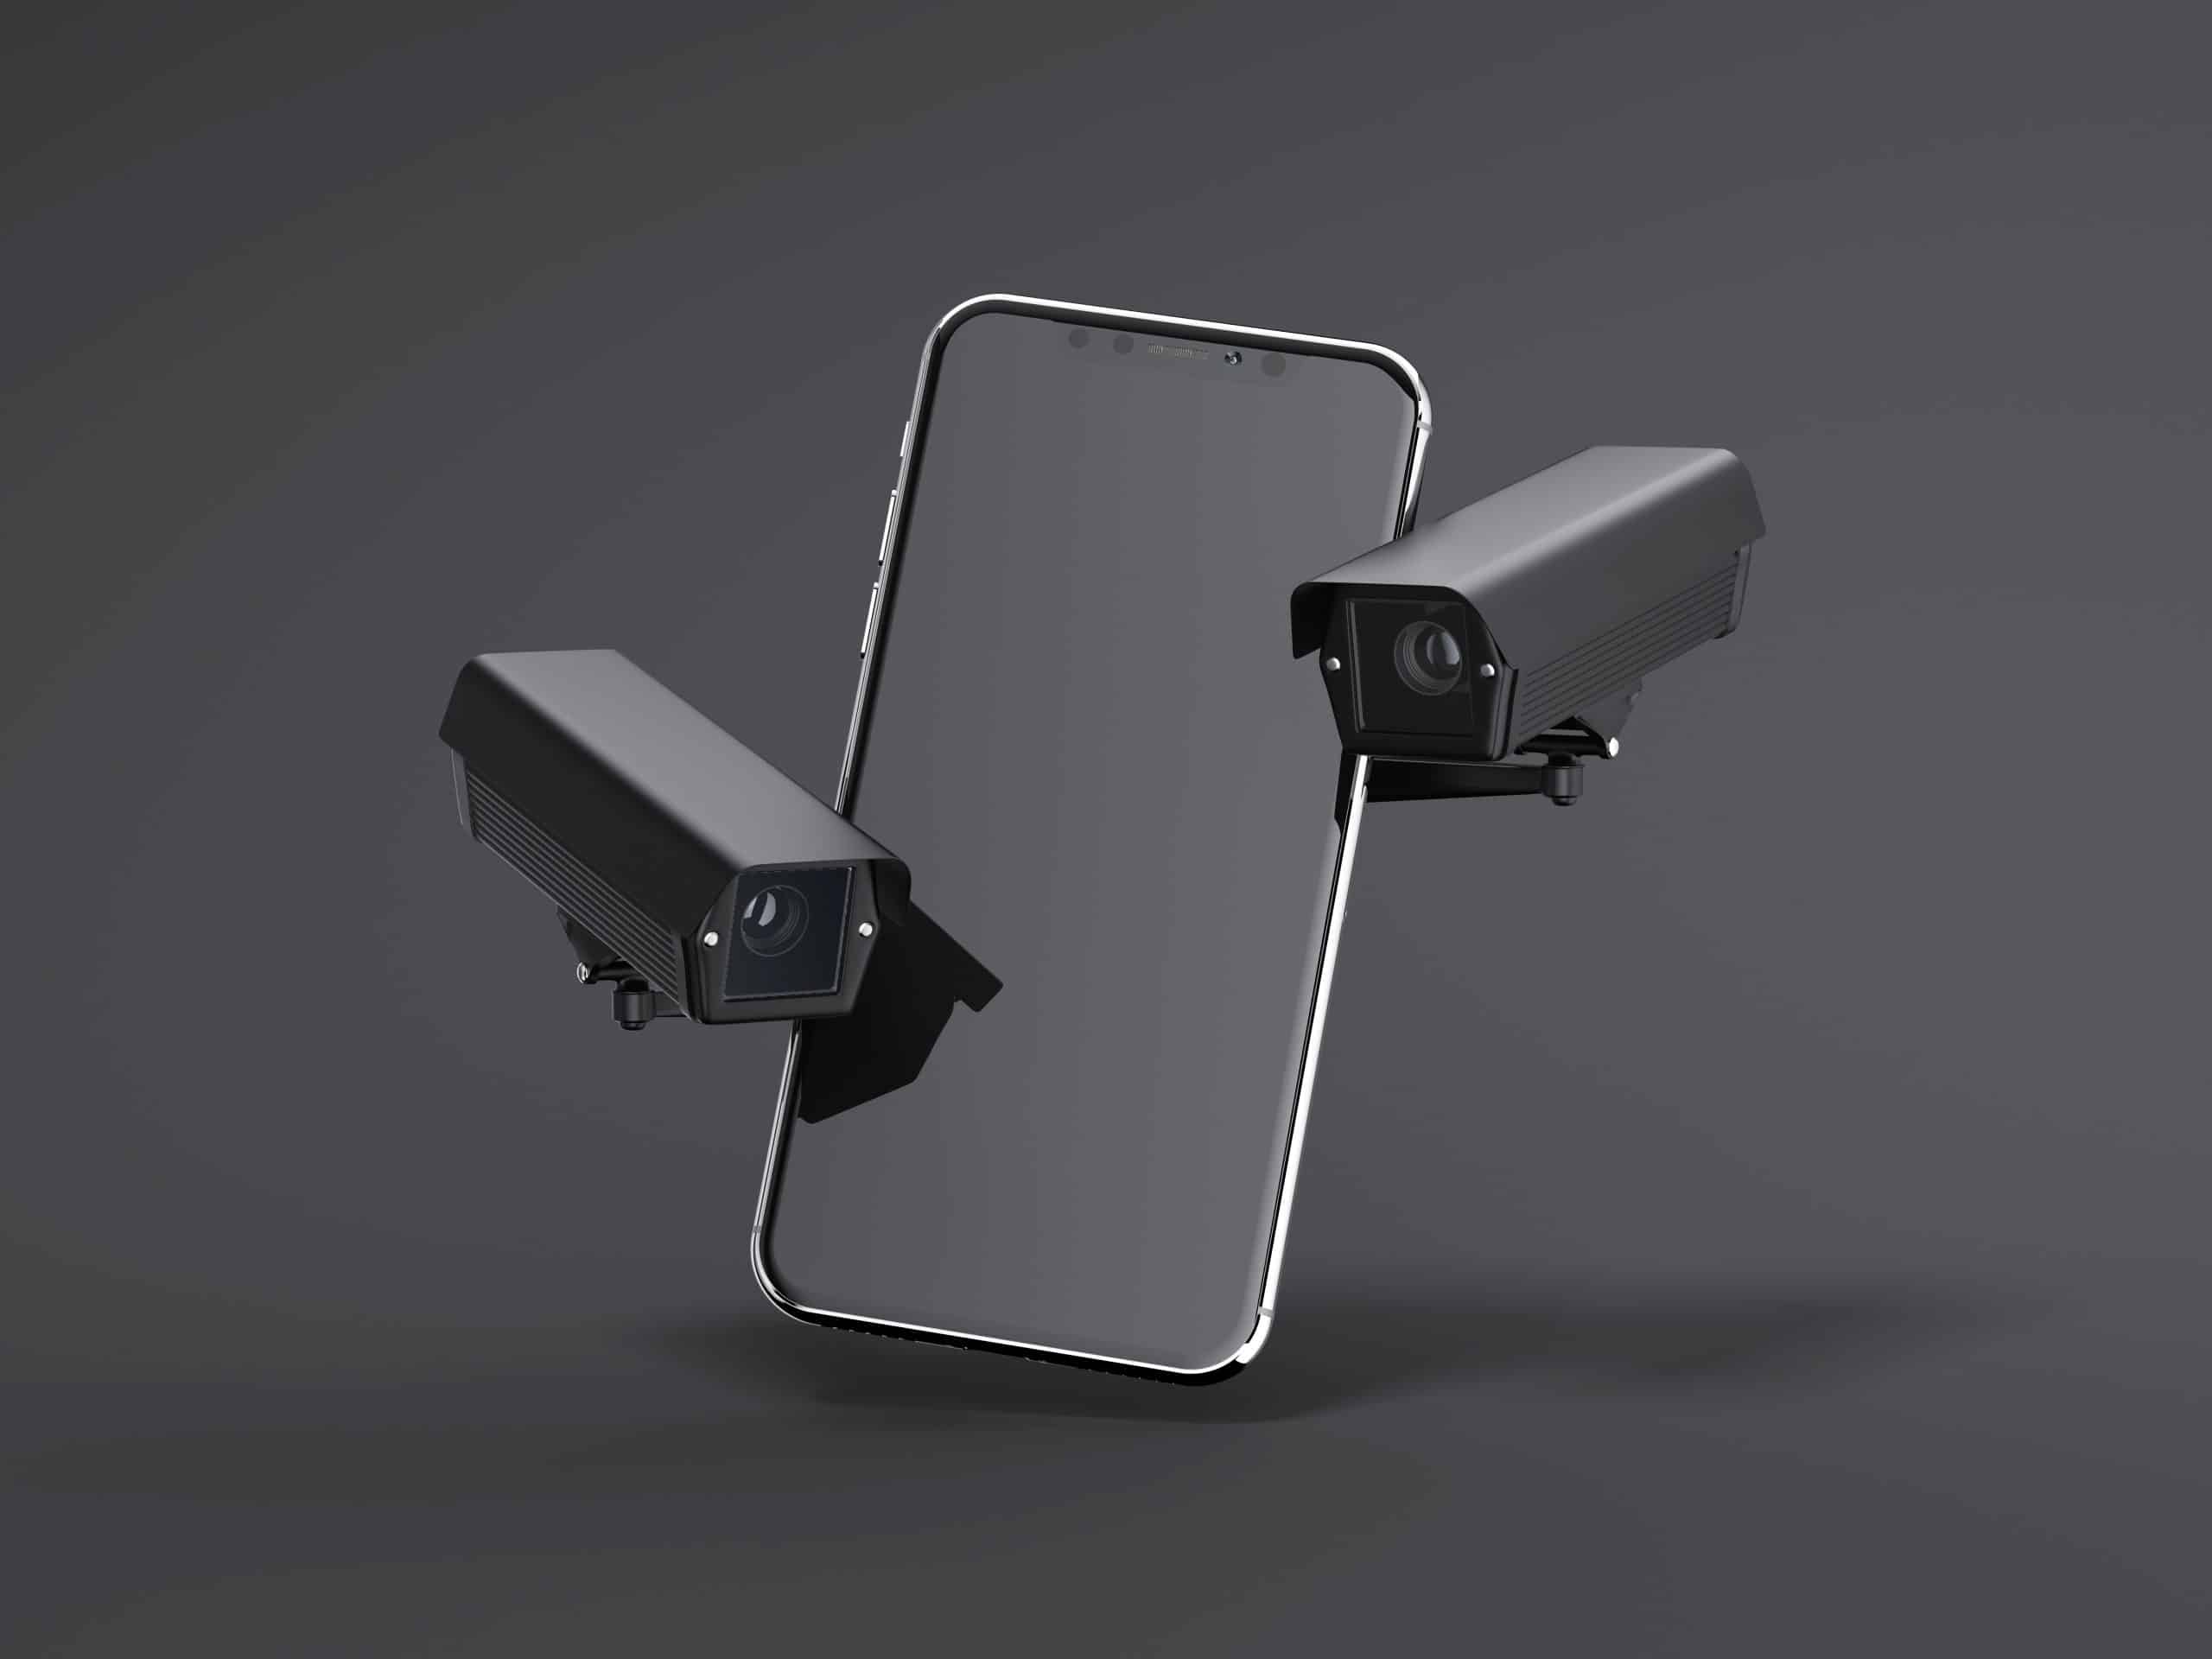 cell phone detectors security scaled